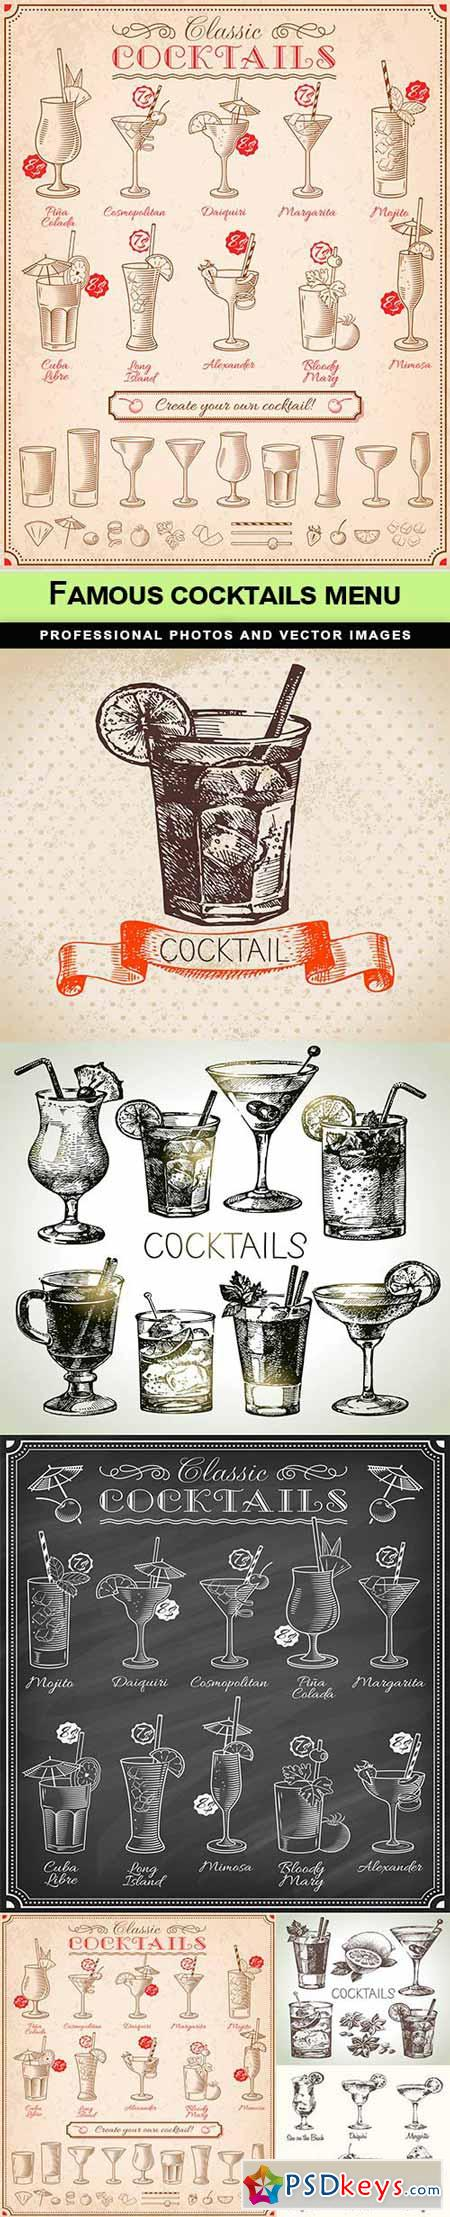 Famous cocktails menu - 6 EPS